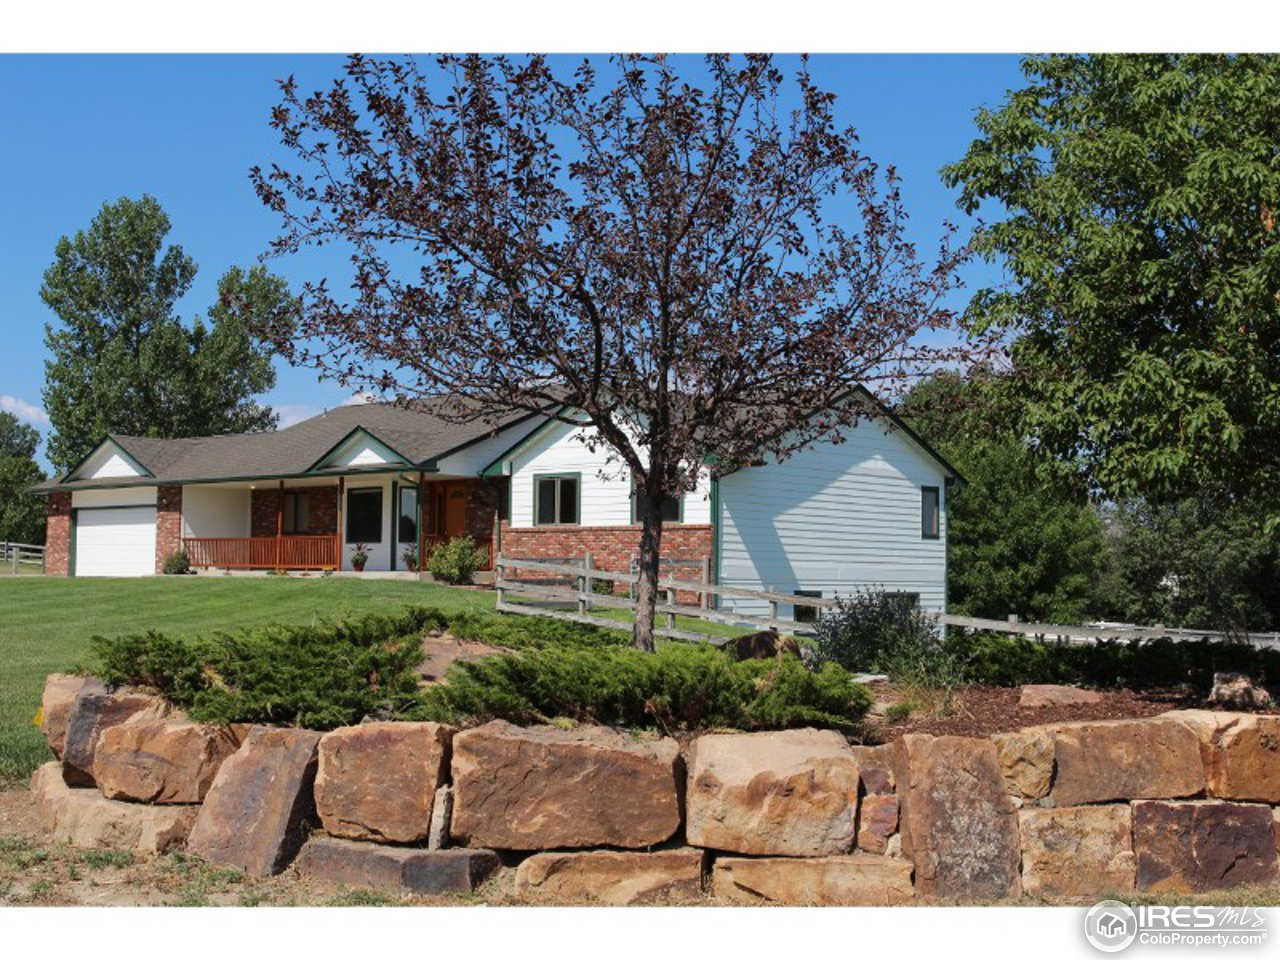 37556 Lee Lake Ave Loveland Home Listings - Team Cook Real Estate